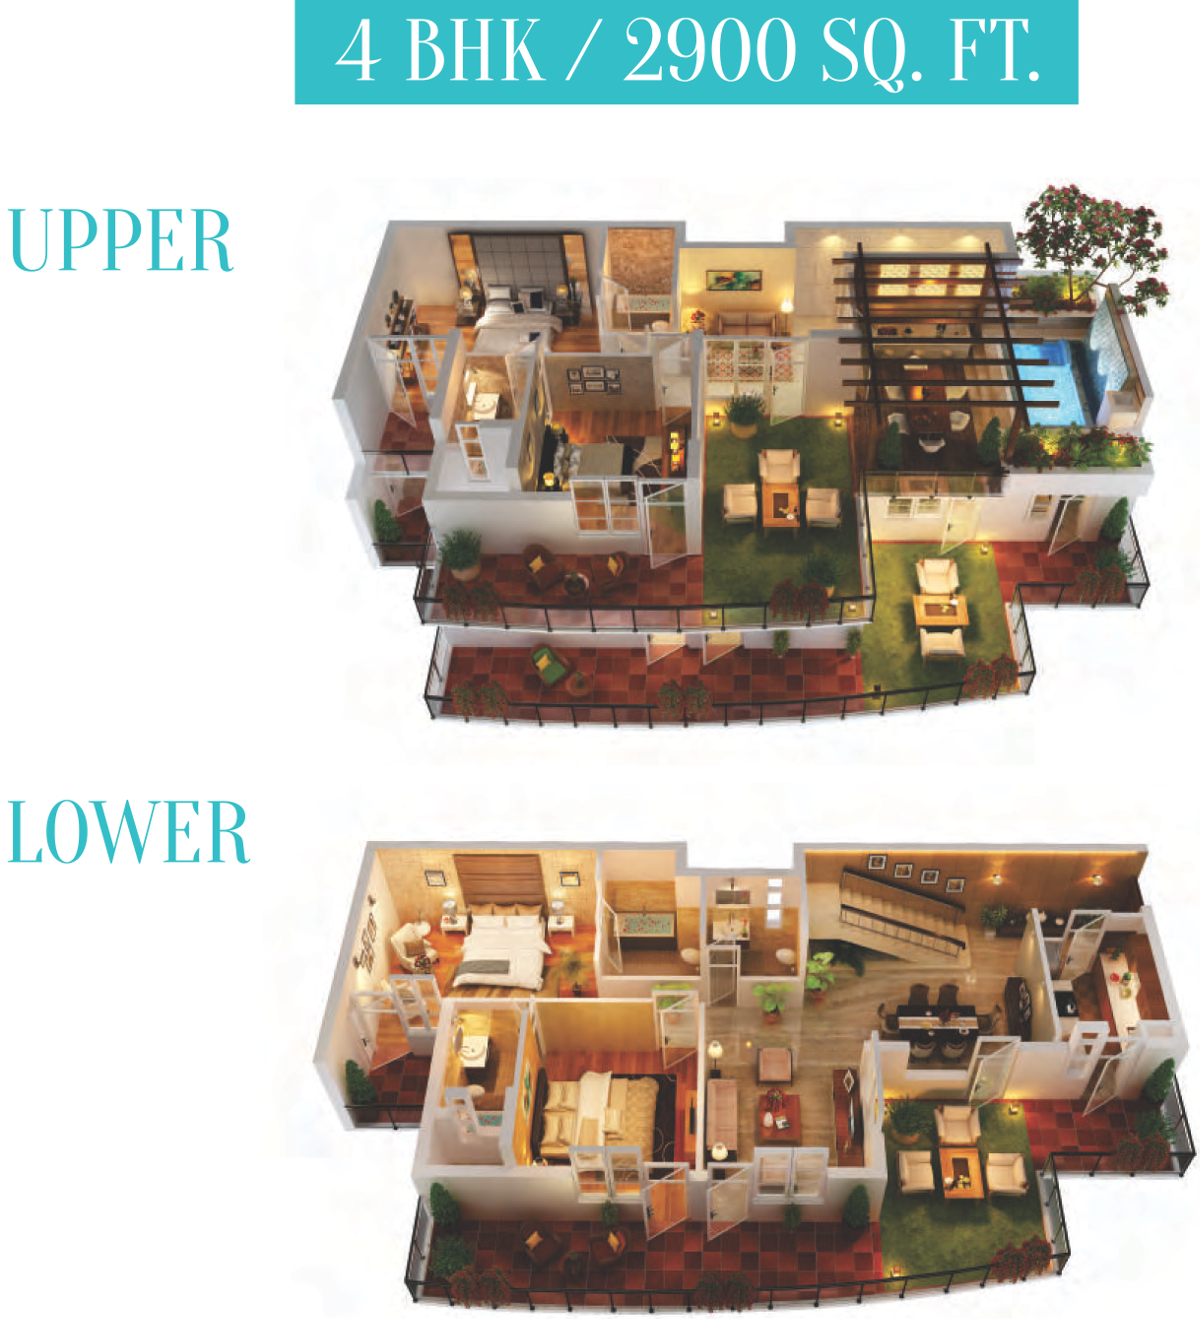 2900 sq ft 4 BHK 5T Apartment for Sale in Cosmos Infra Engineering Cascade Gardens Sector 99 Gurgaon